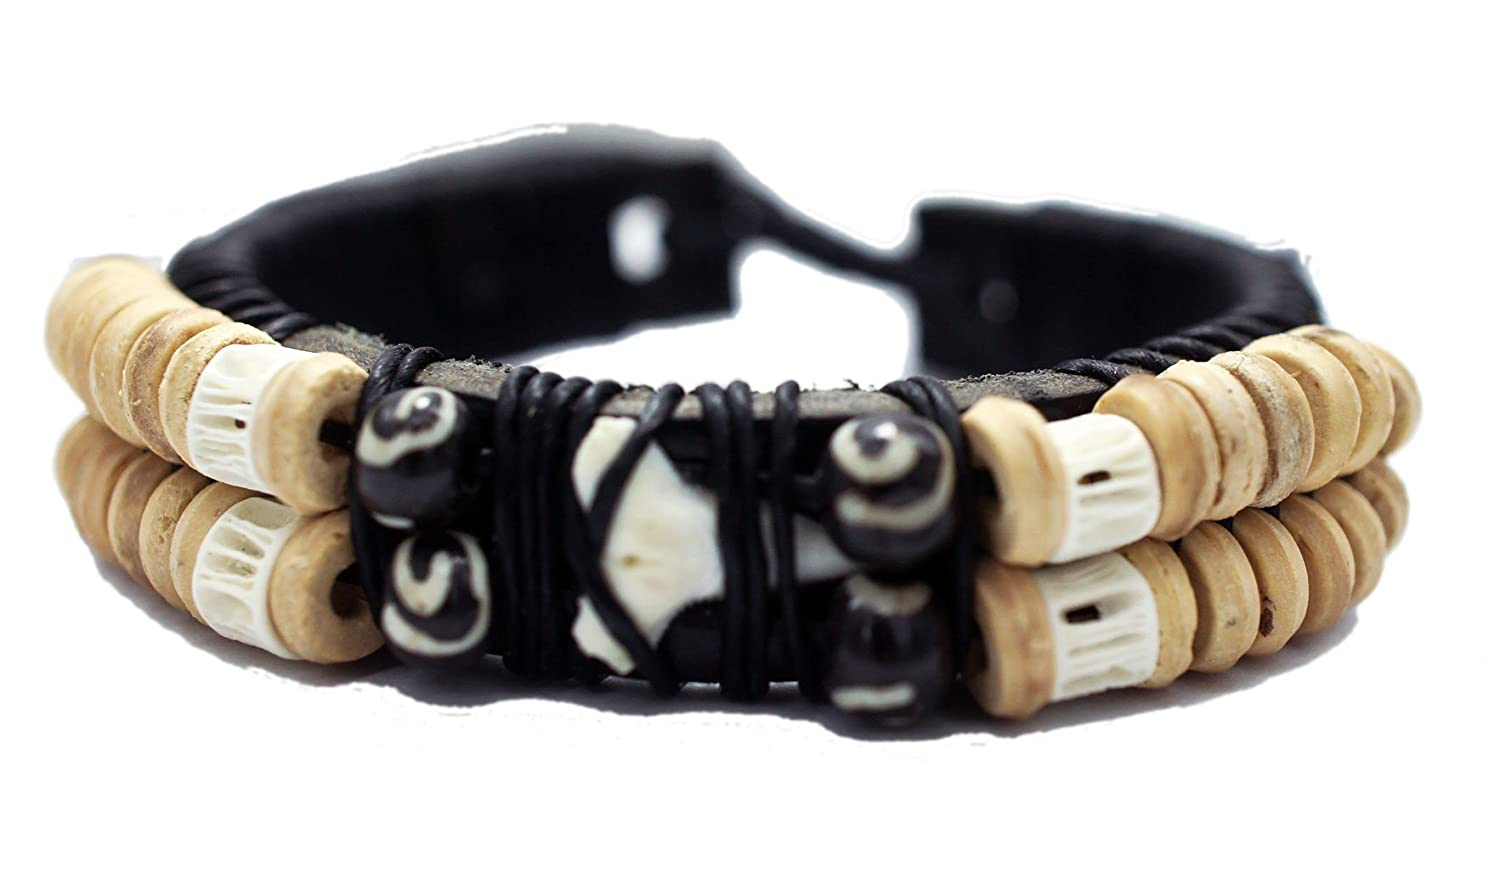 Men's Handmade Shark Tooth Wood Beads Leather Cuff Caribbean Style Bracelet